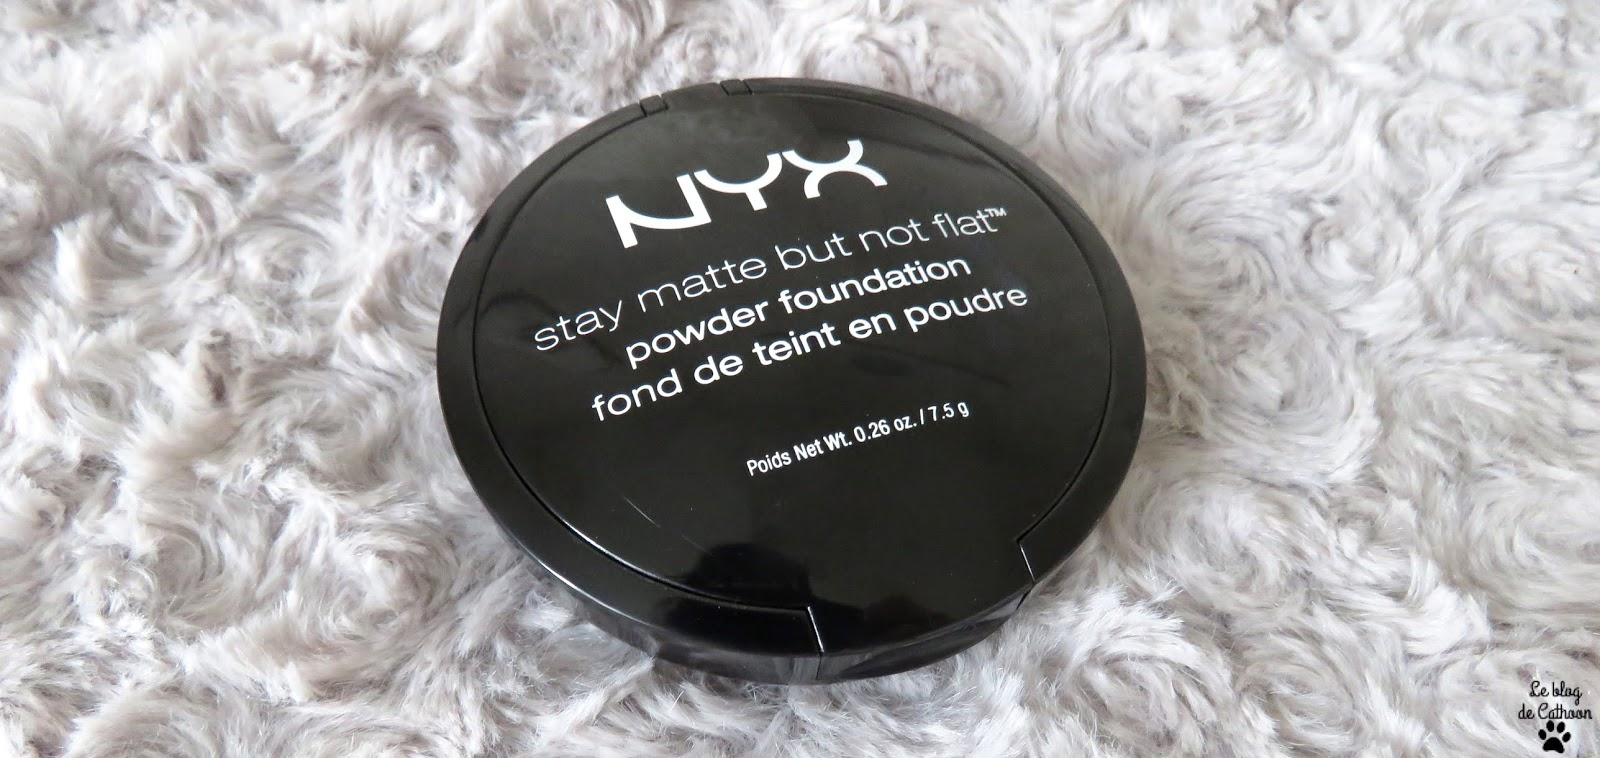 Stay Matte But Not Flat - Fond de Teint Poudre - NYX